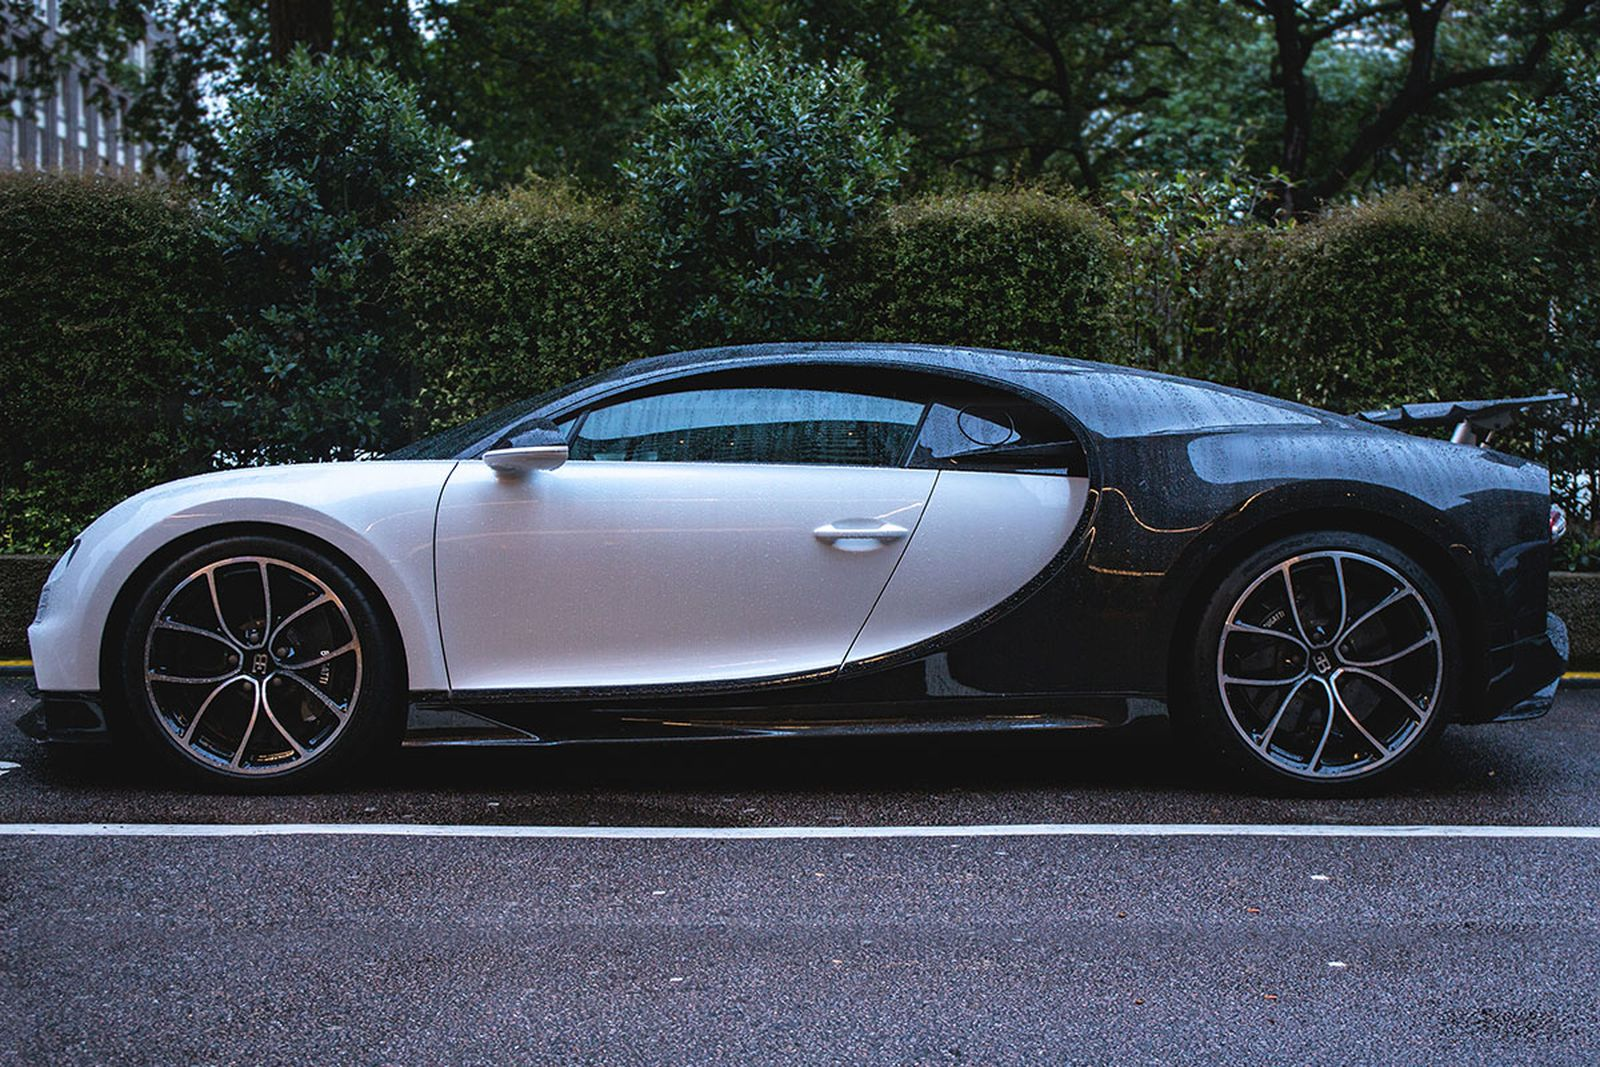 Take A Closer Look At Kylie Jenner S 3 Million Bugatti Chiron